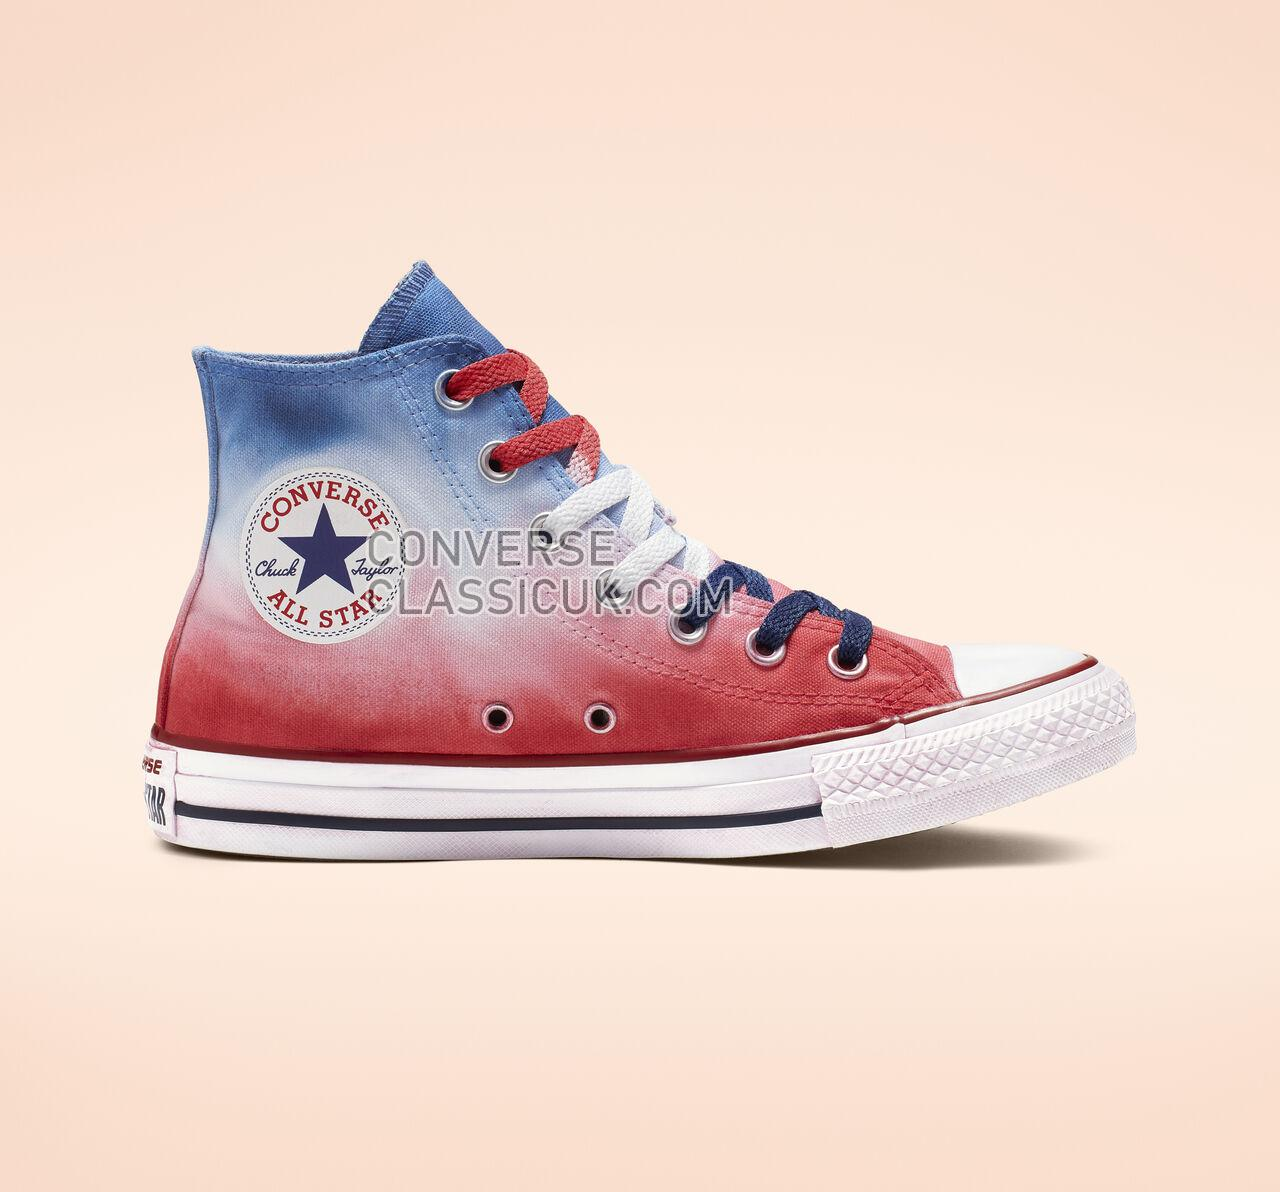 Converse Chuck Taylor All Star Dip Dye High Top Mens Womens Unisex 164523C Navy Red Dip Dyed/White Shoes